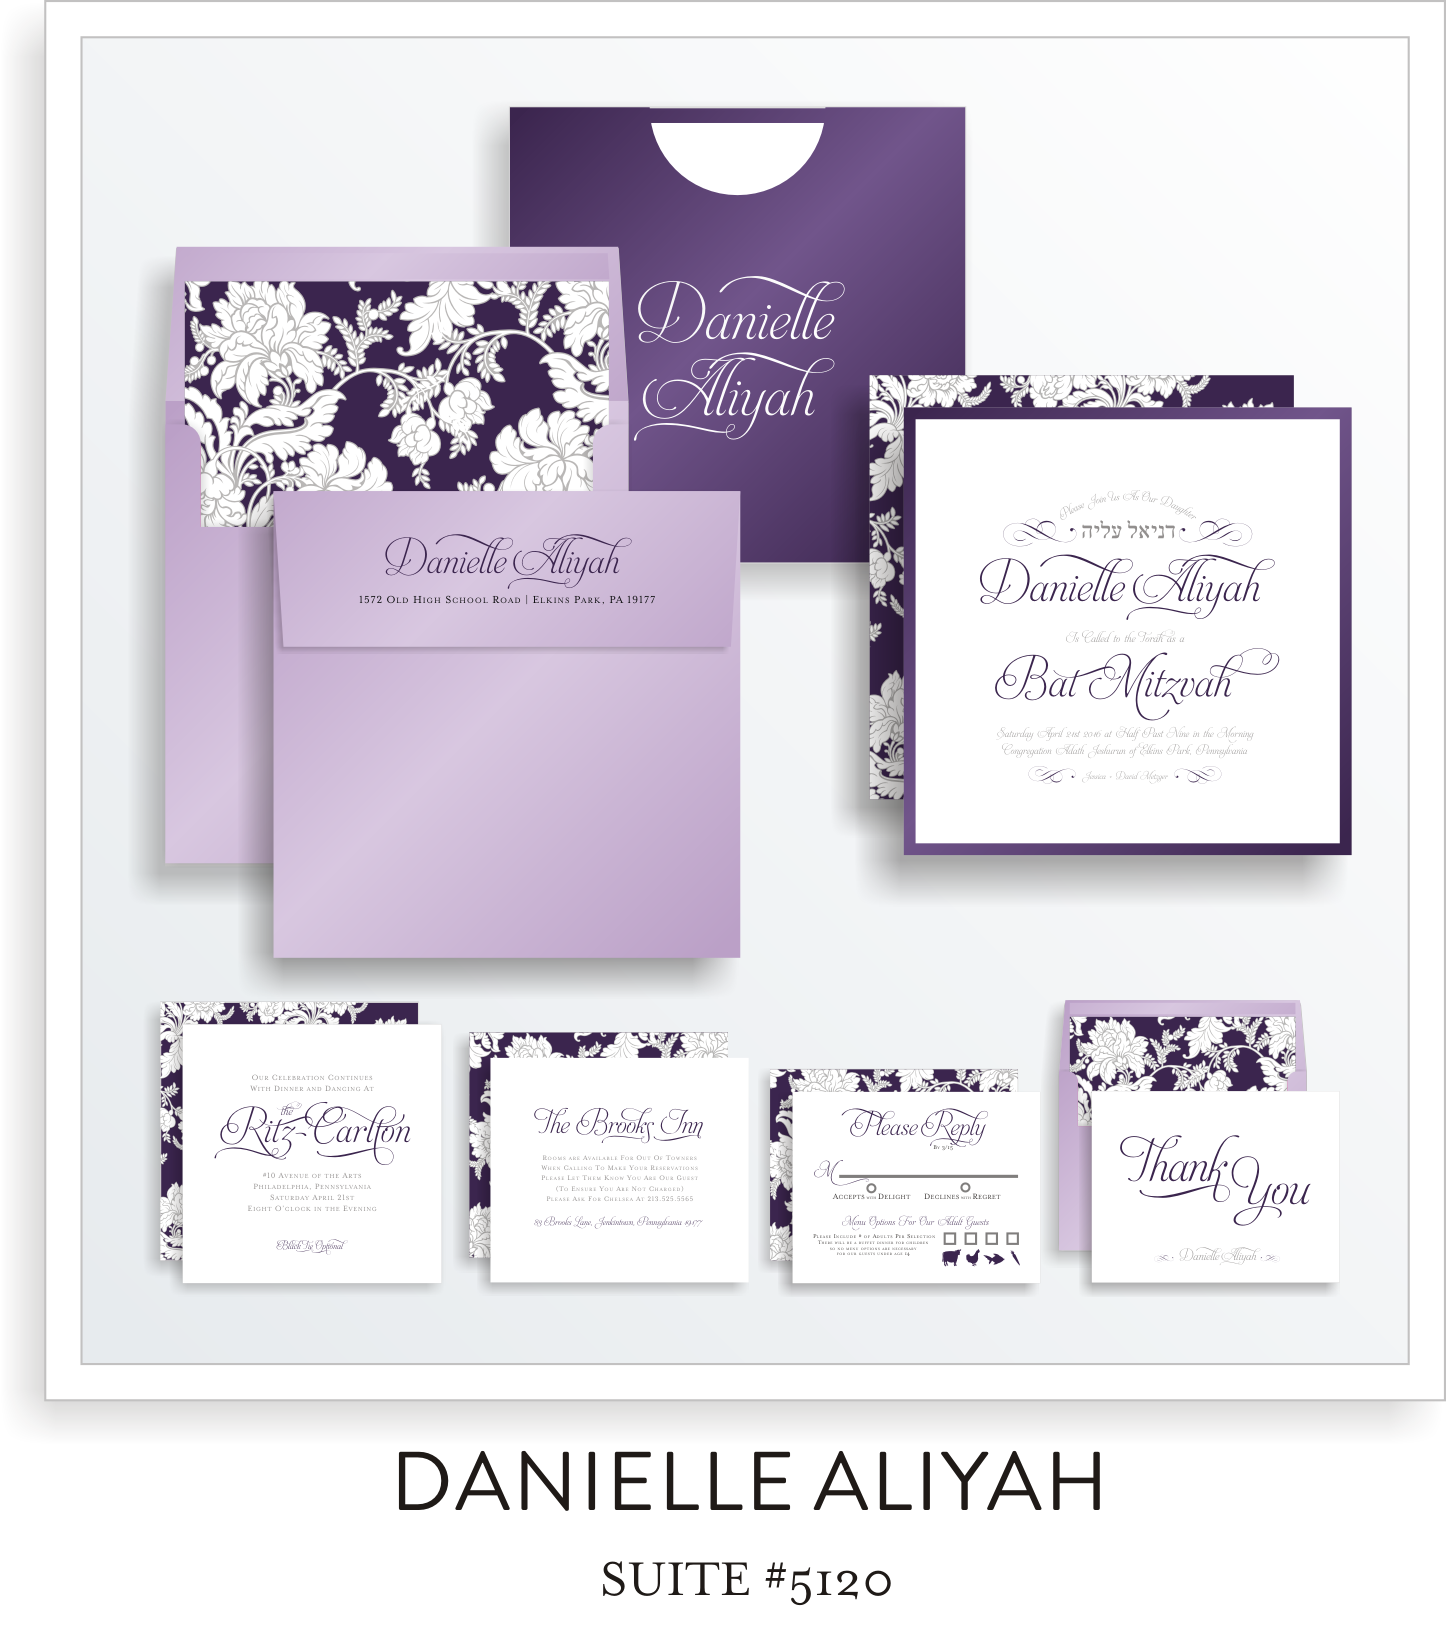 bat mitzvah invitation suite 5120